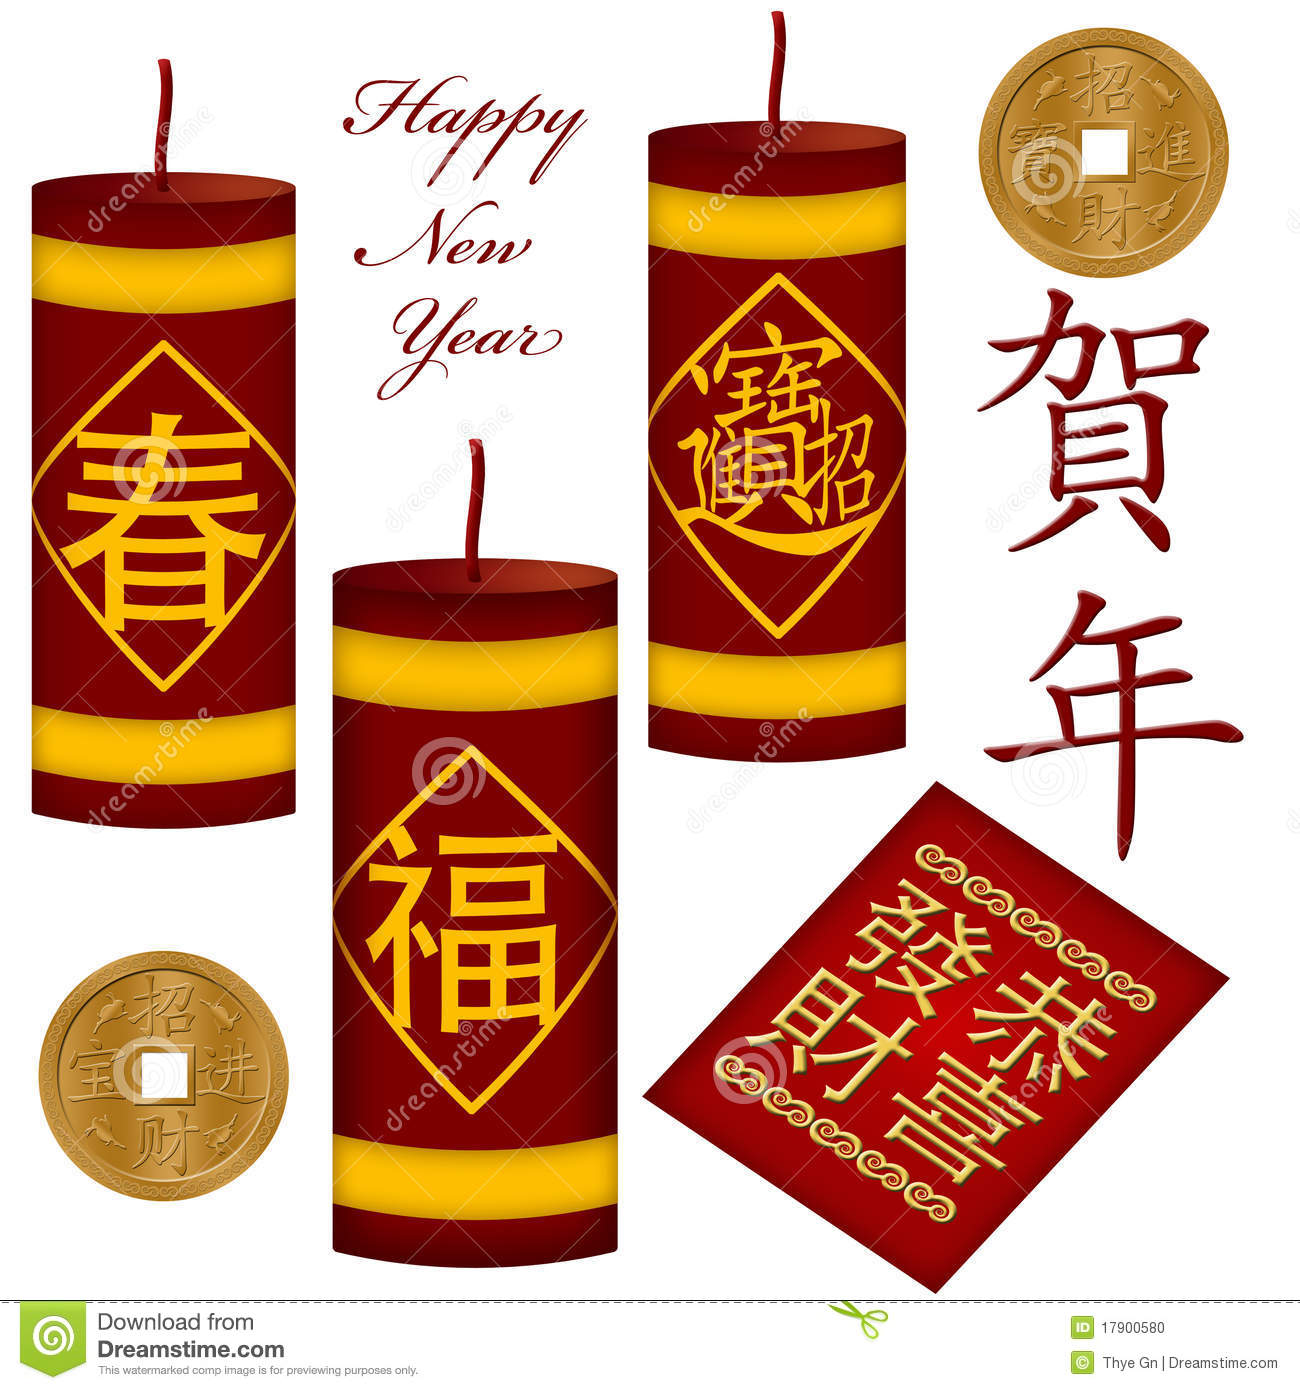 Chinese New Year Firecrackers Royalty Free Stock Image.